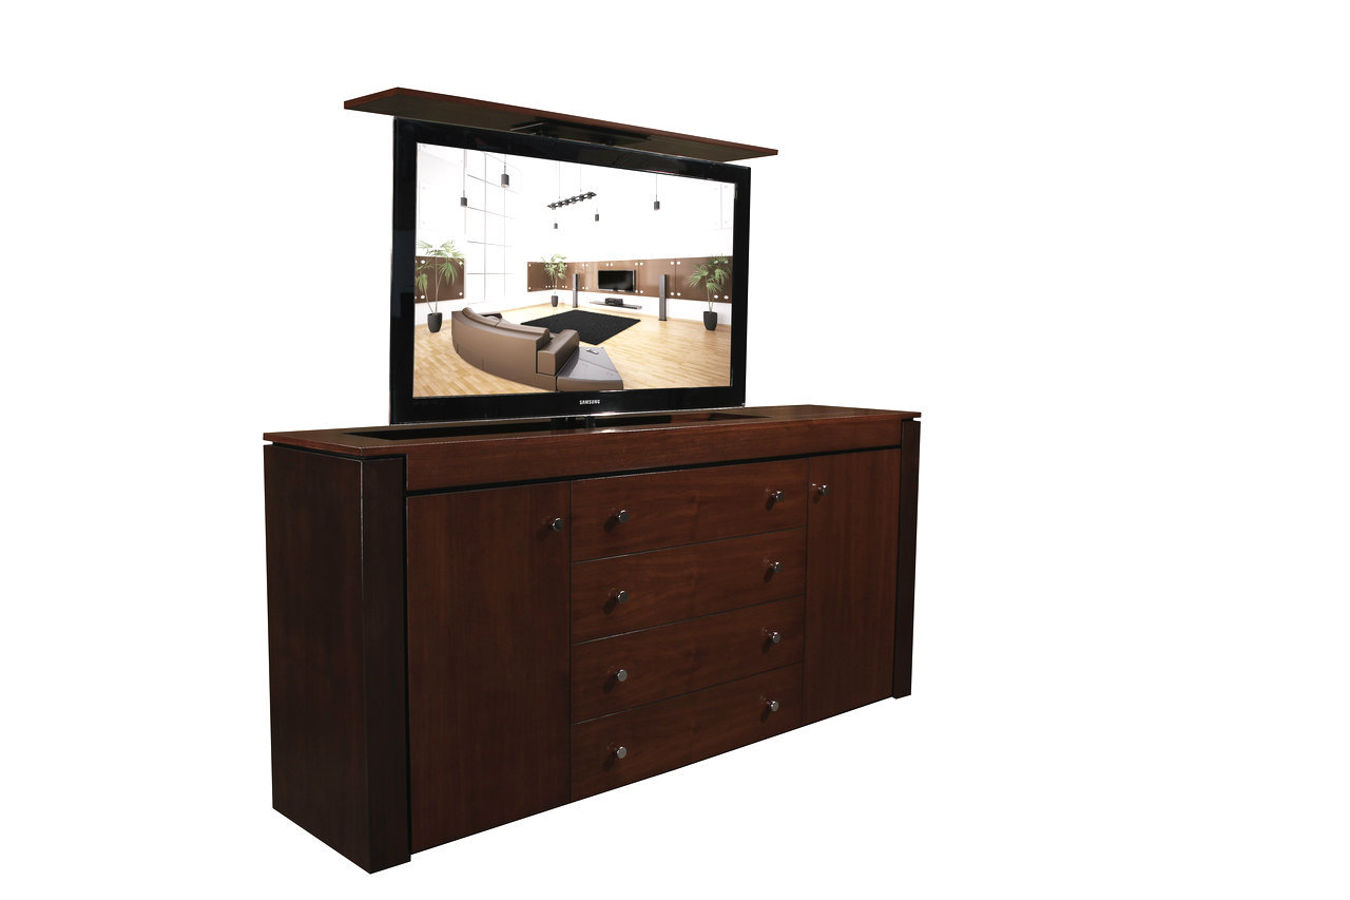 Modern Buffet Walnut Tv Lift Cabinet| Custom Made Tv Cabinets Within Contemporary Espresso 2 Cabinet Dining Buffets (View 25 of 30)